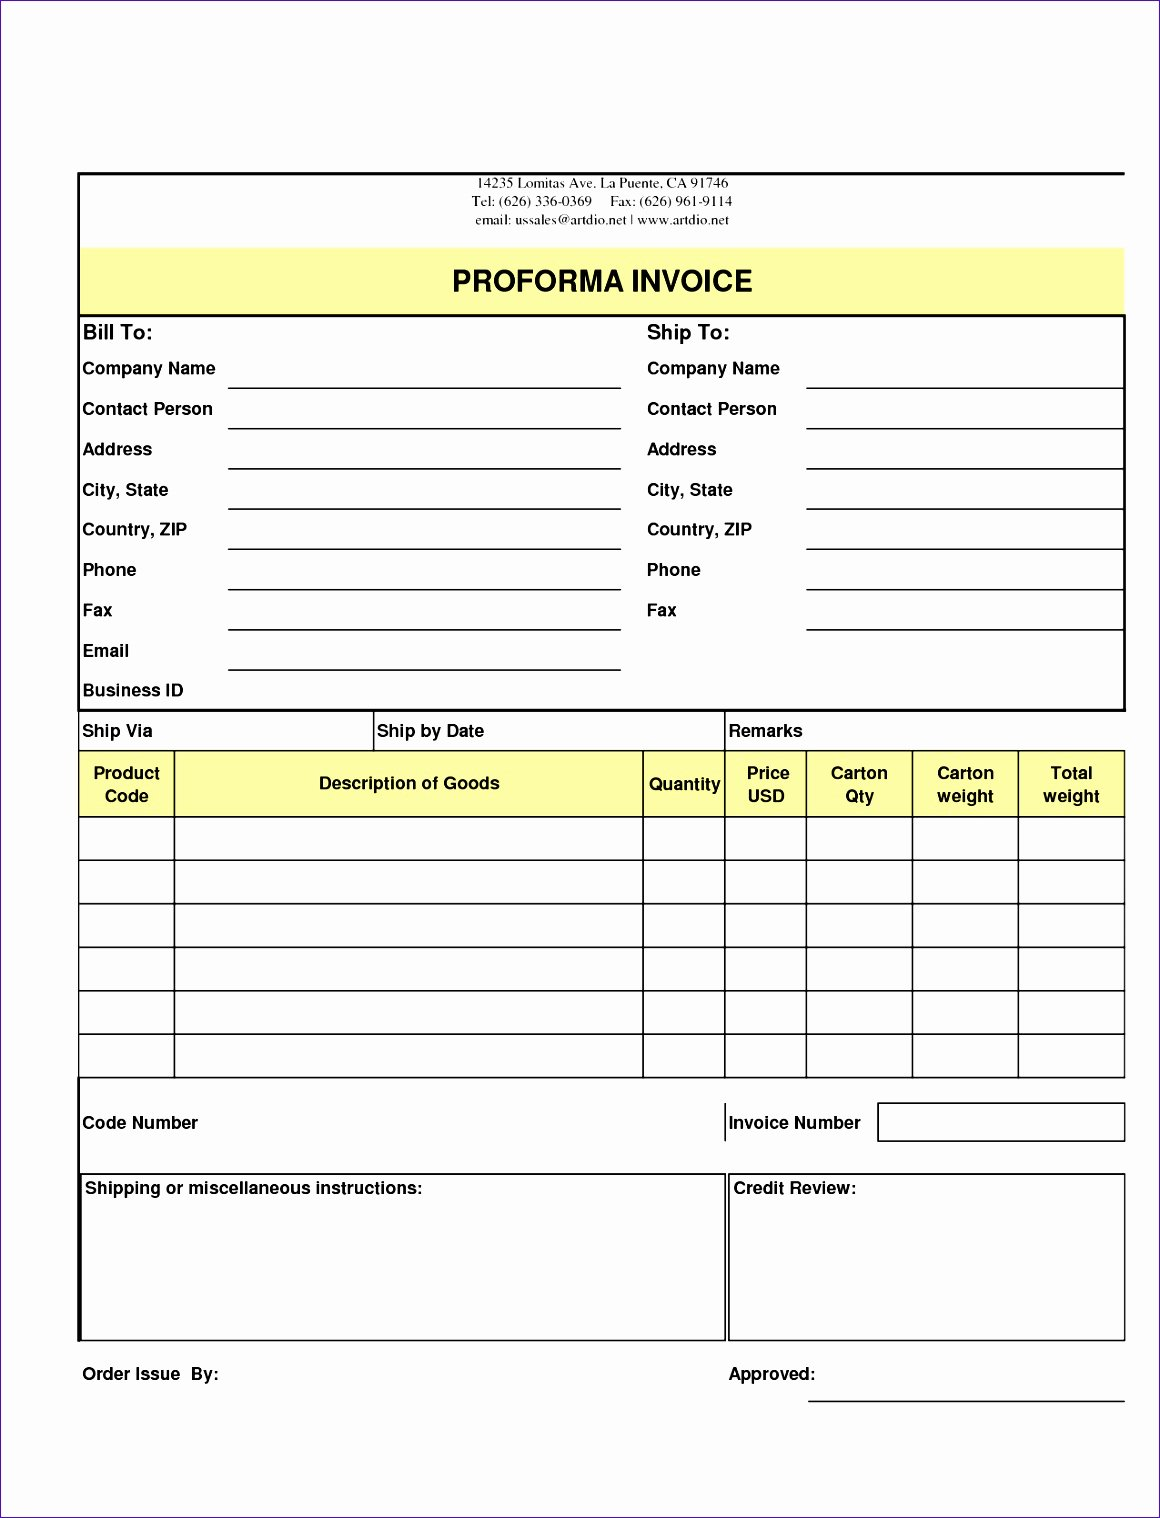 Purchase Requisition forms Template Fresh 12 Purchase Requisition Template Excel Exceltemplates